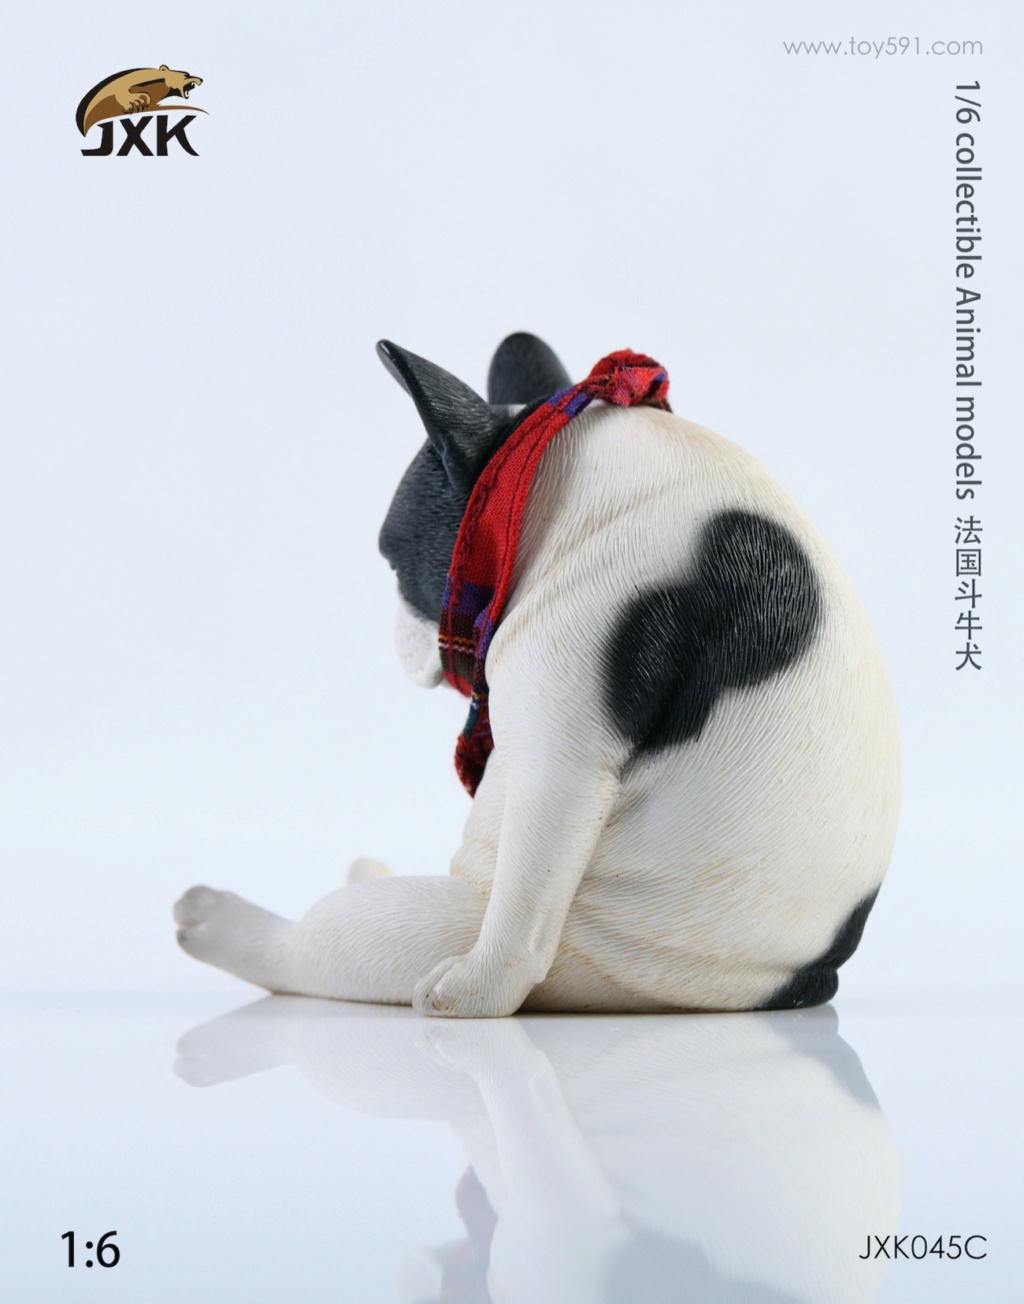 Dog - NEW PRODUCT: JXK 1/6 Decadent Dog JXK045 French Bulldog + Scarf D4a86810